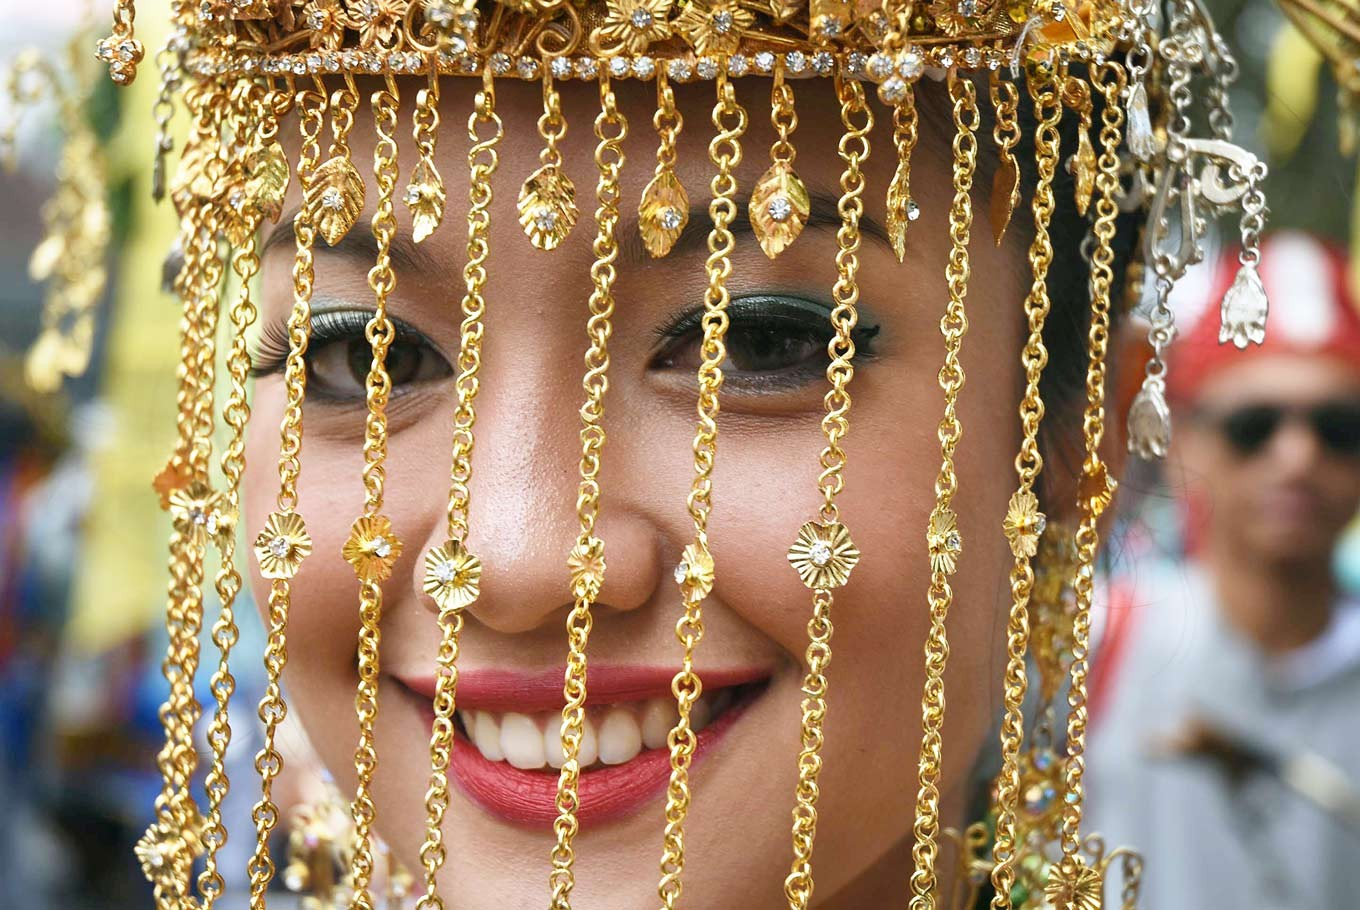 Veiled beauty: A participant from Tangerang, Banten, smiles behind the beautiful beaded veil of a traditional wedding costume.